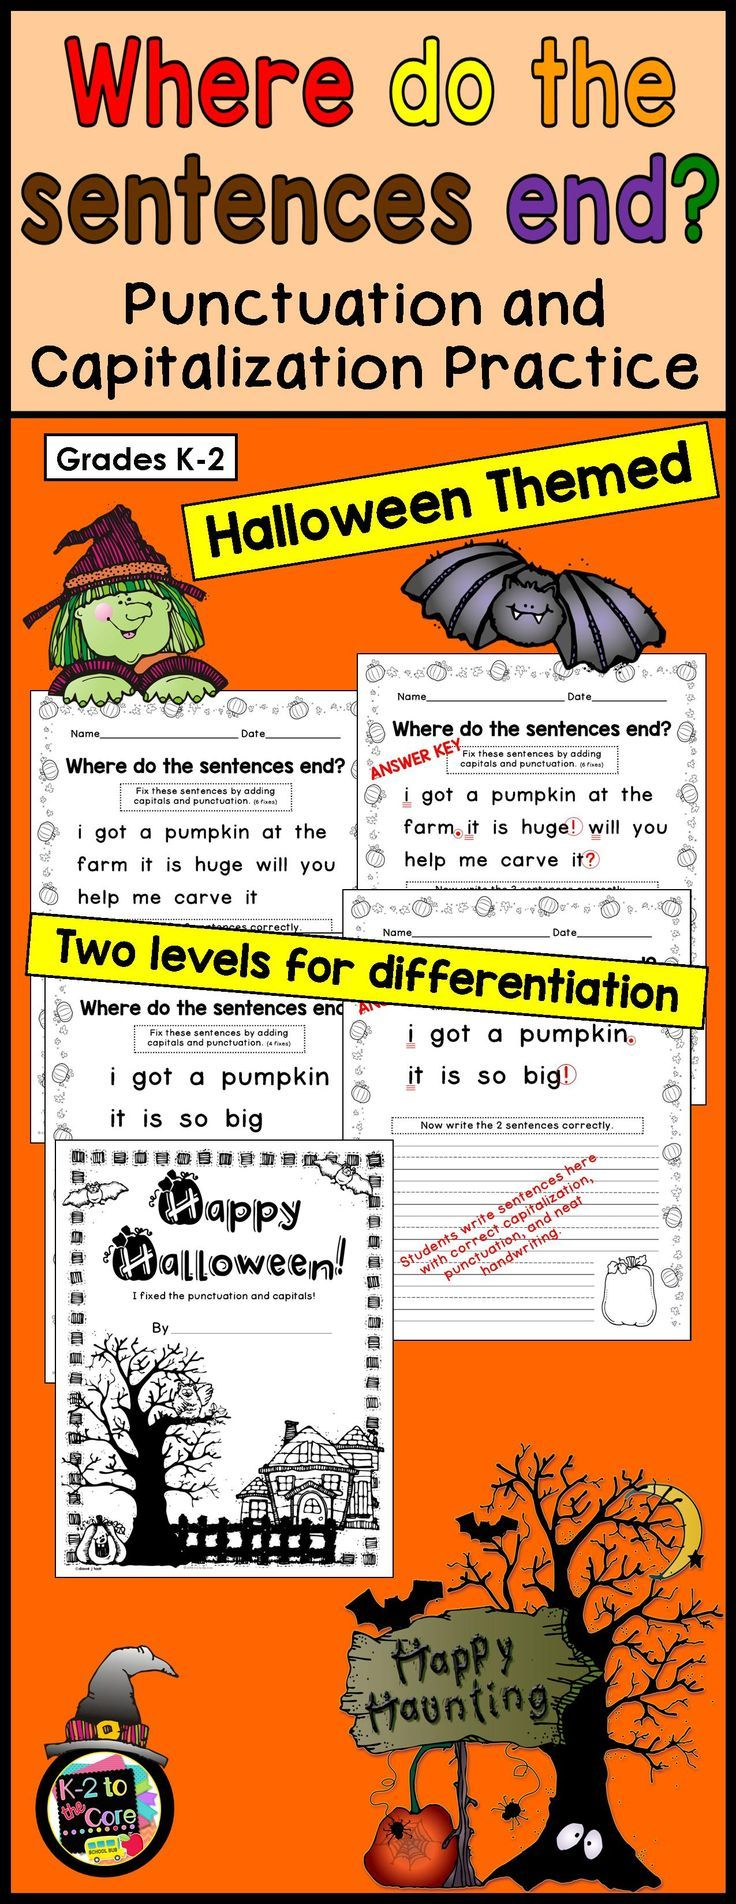 Provide your students with capitalization and punctuation practice with these differentiated editing and writing practice sheets. Each page has two or three Halloween-themed sentences with missing capitals and punctuation. Your students' job is to figure out where the sentences end, edit the sentences, and then rewrite them with correct capitalization and punctuation, as well as neat handwriting.